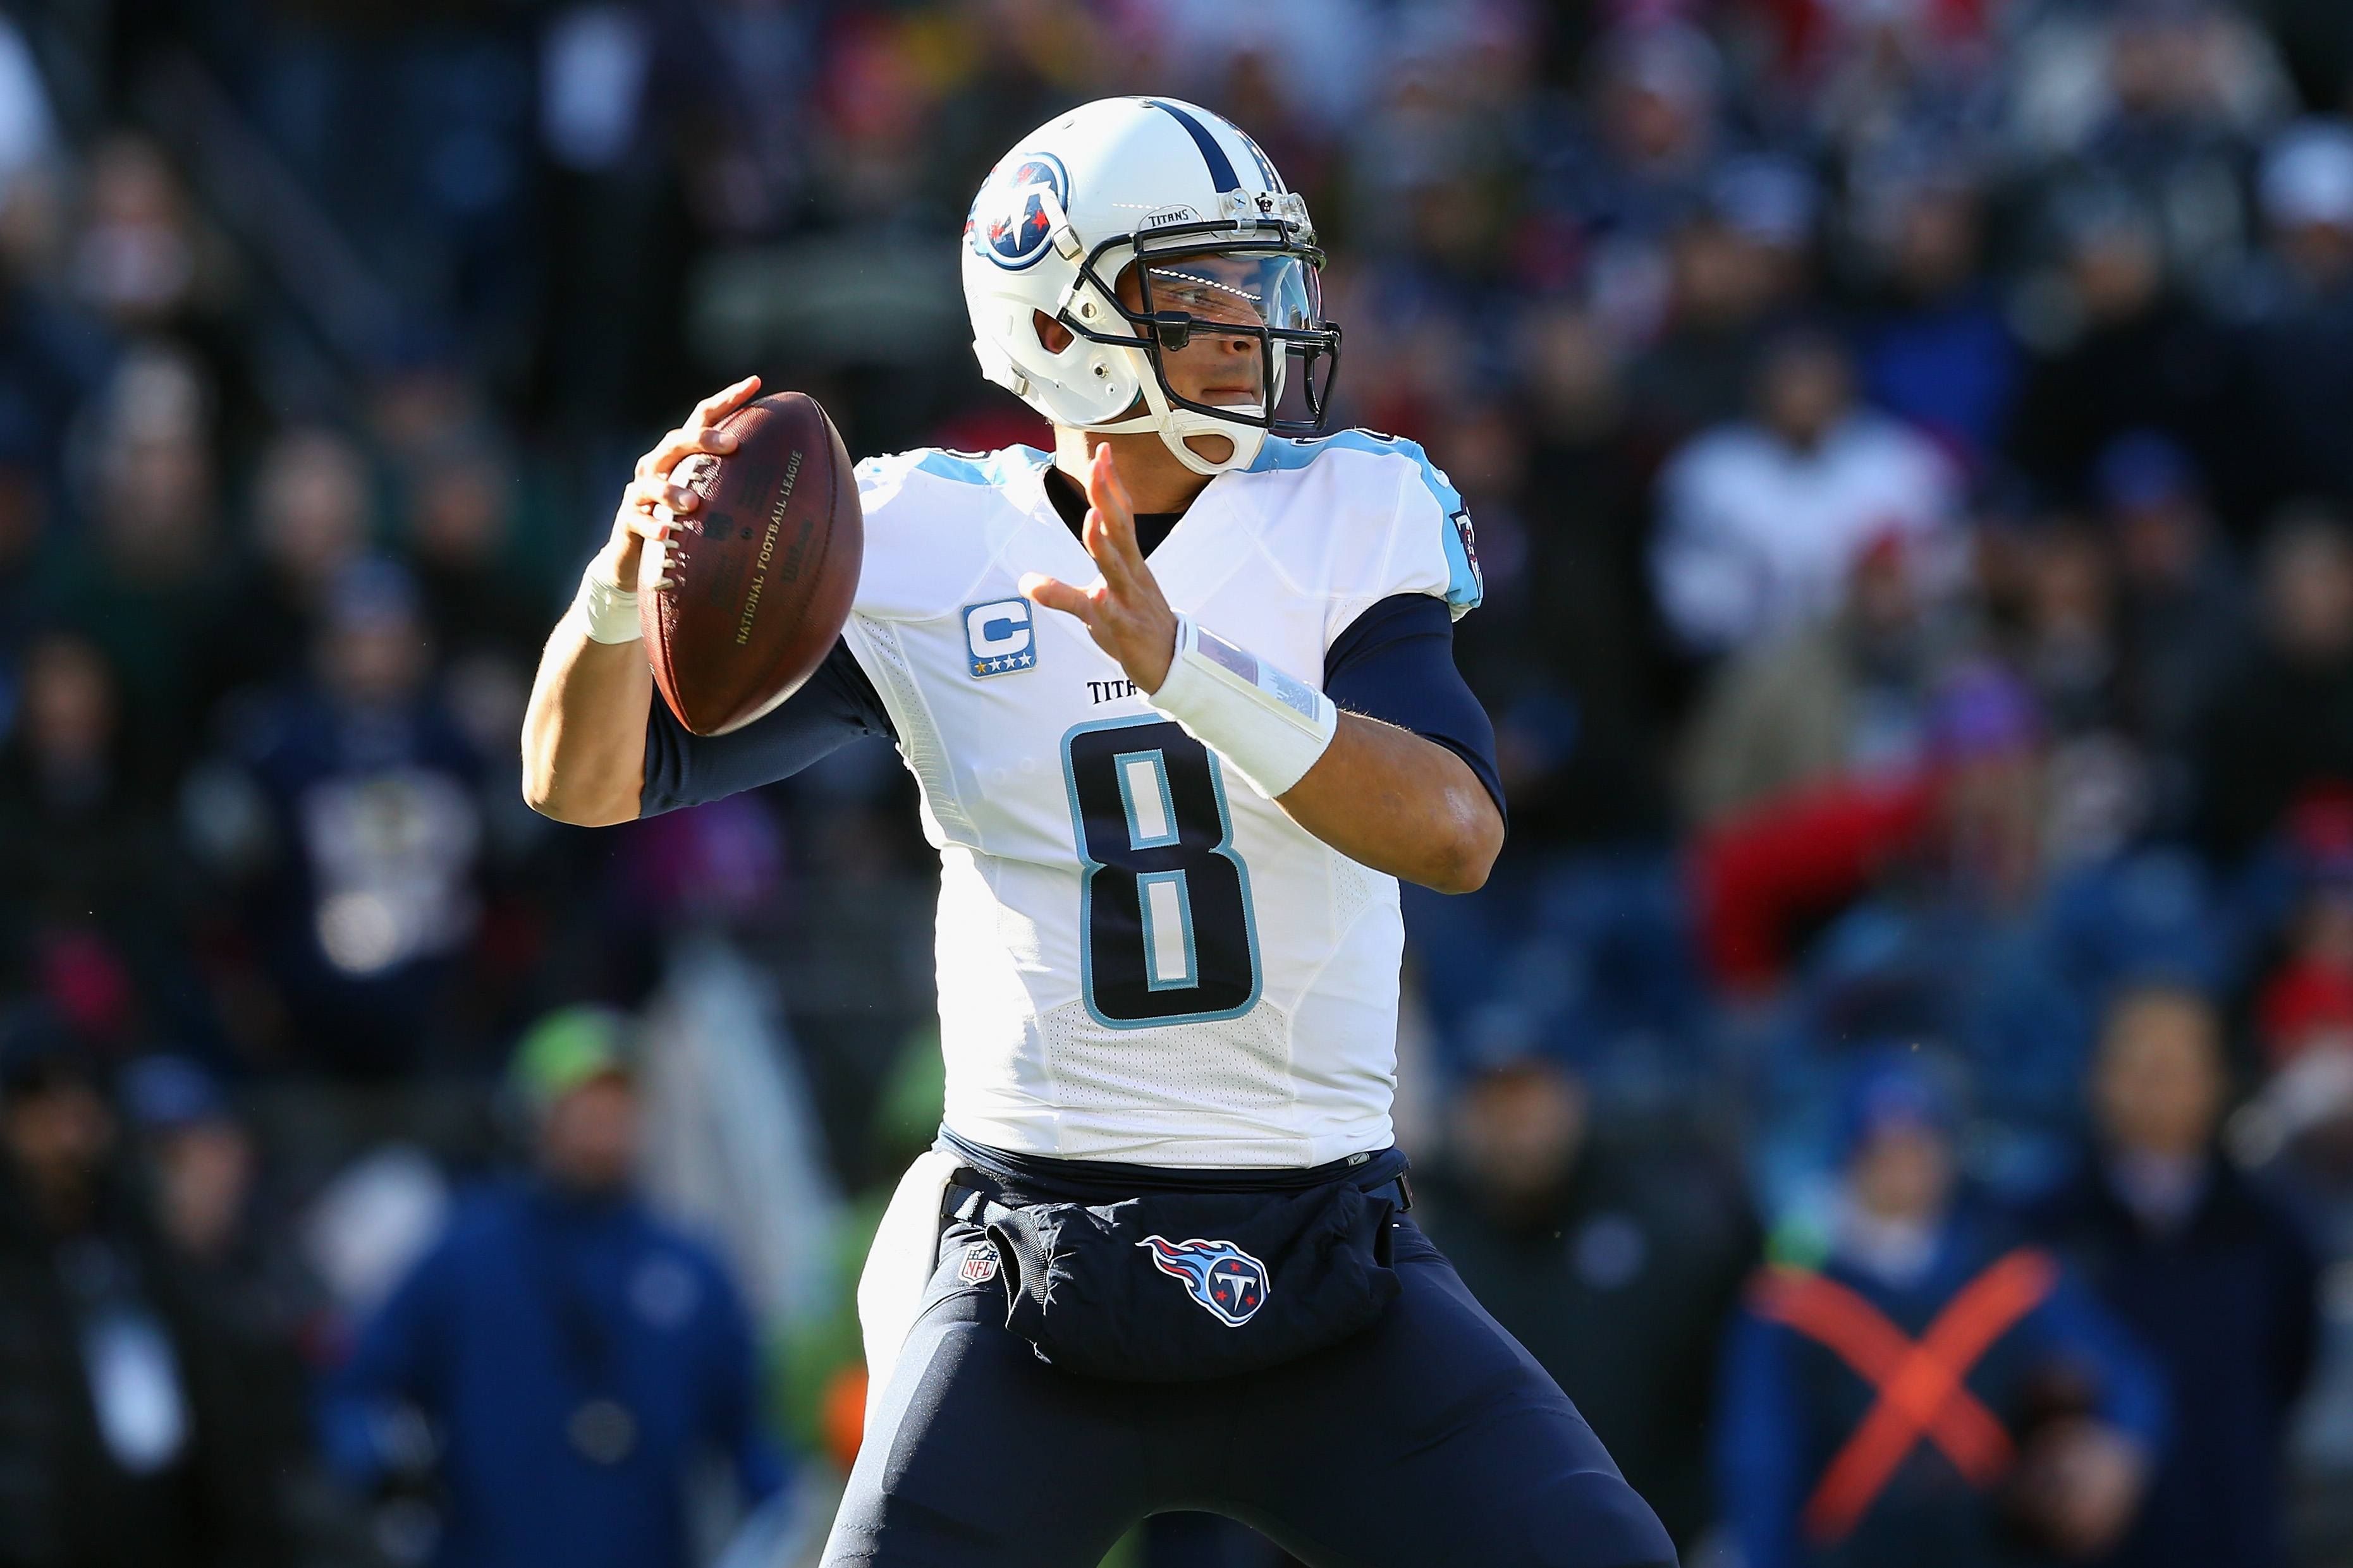 The best statistical game by an NFL rookie quarterback in each season since 2010